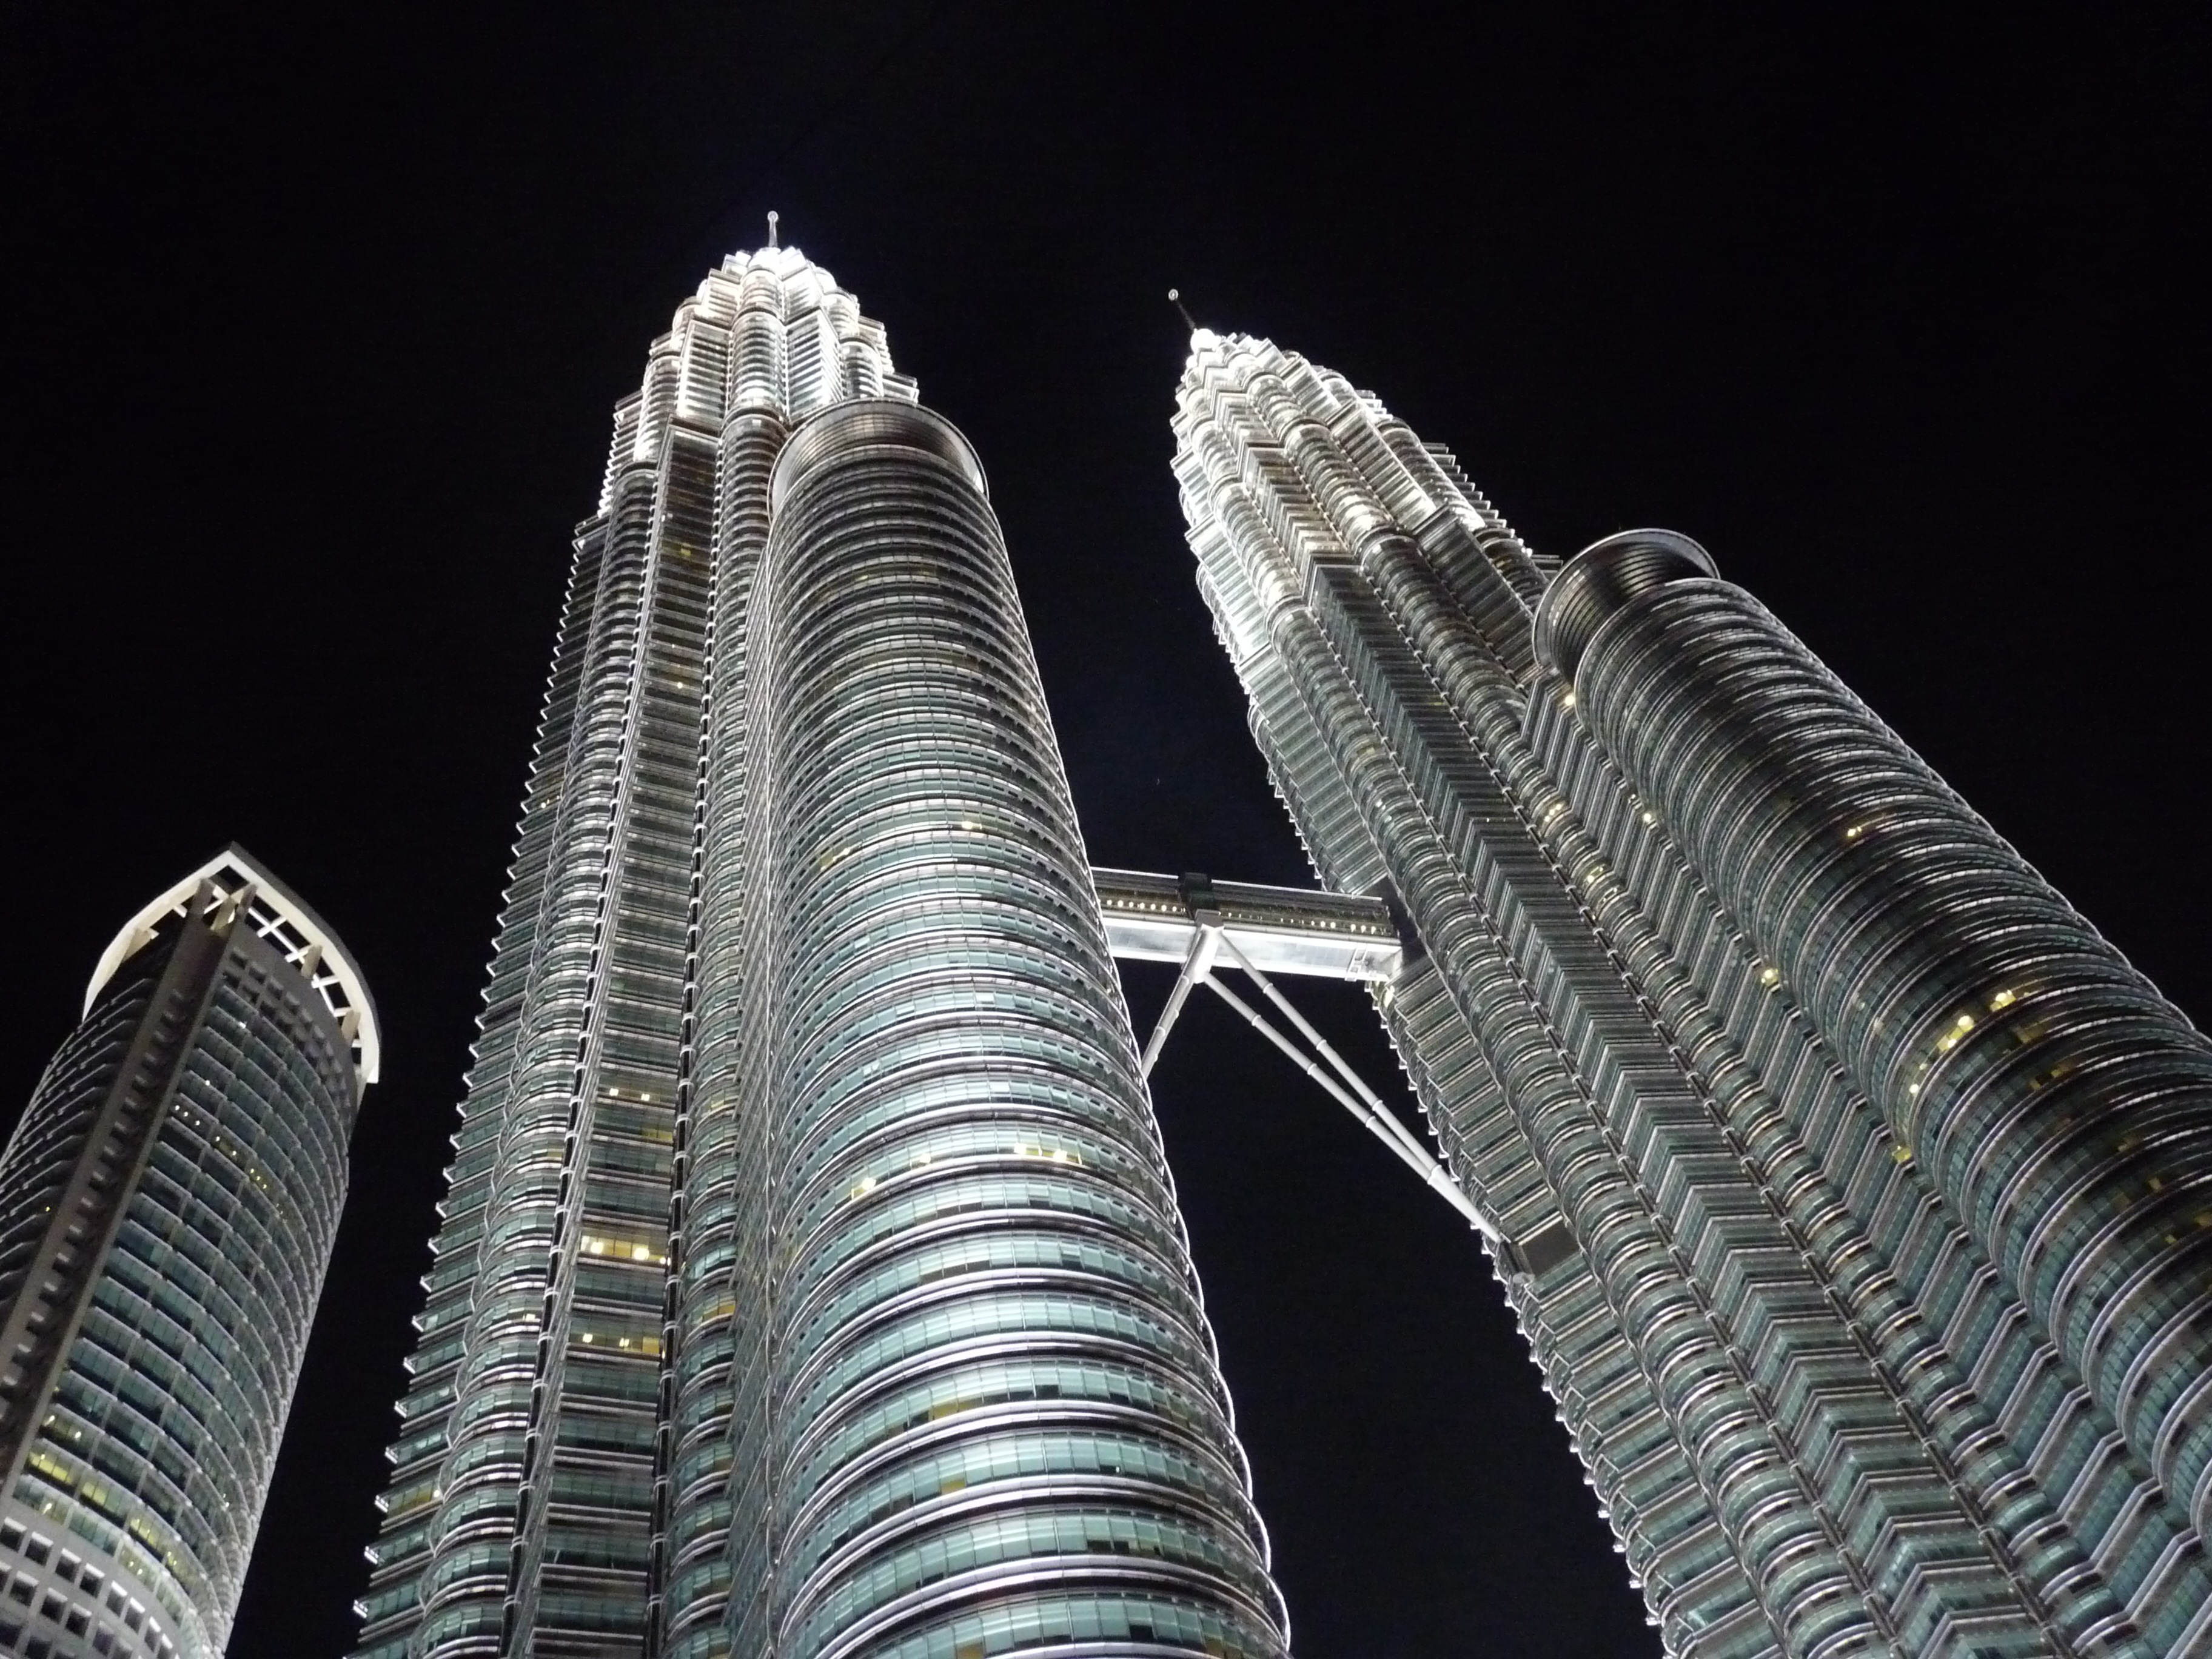 Once the world's tallest buildings